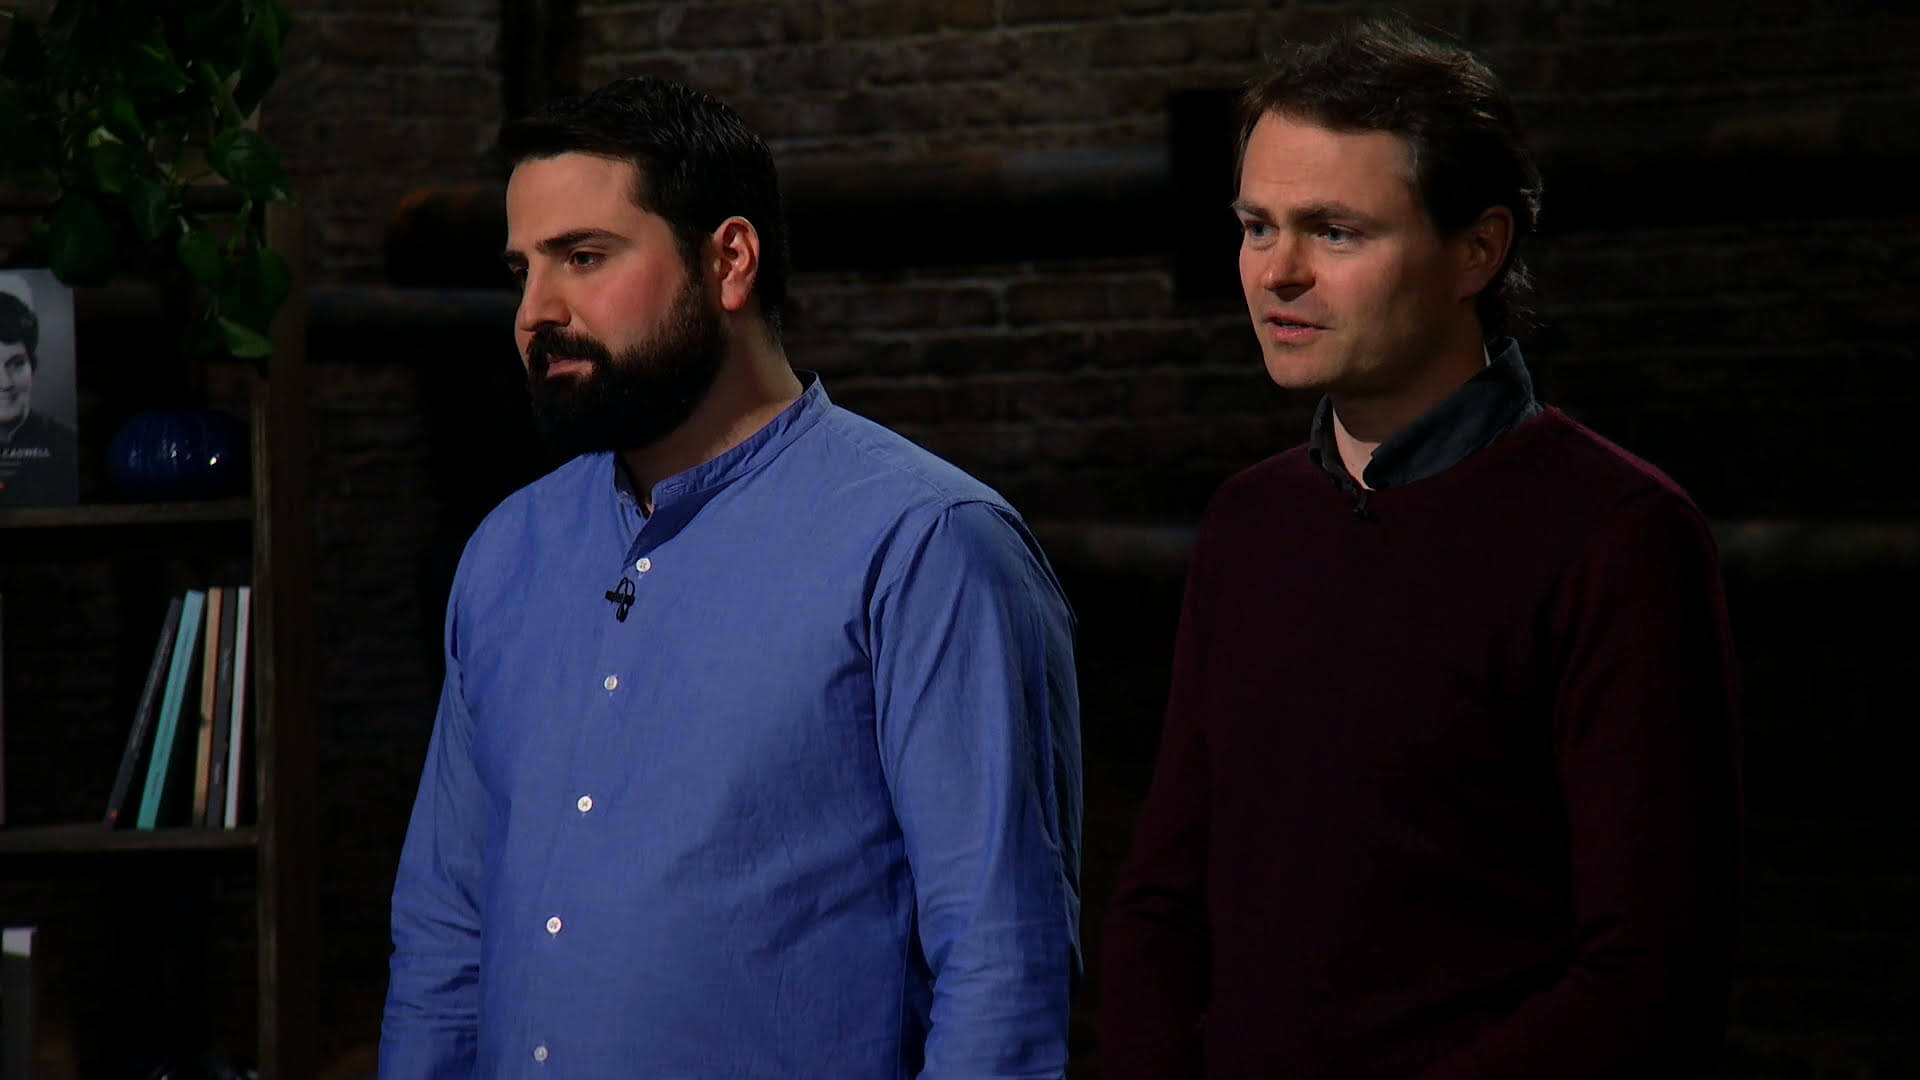 Behind StoryTerrace's Dragons' Den Appearance (the UK's Shark Tank!)